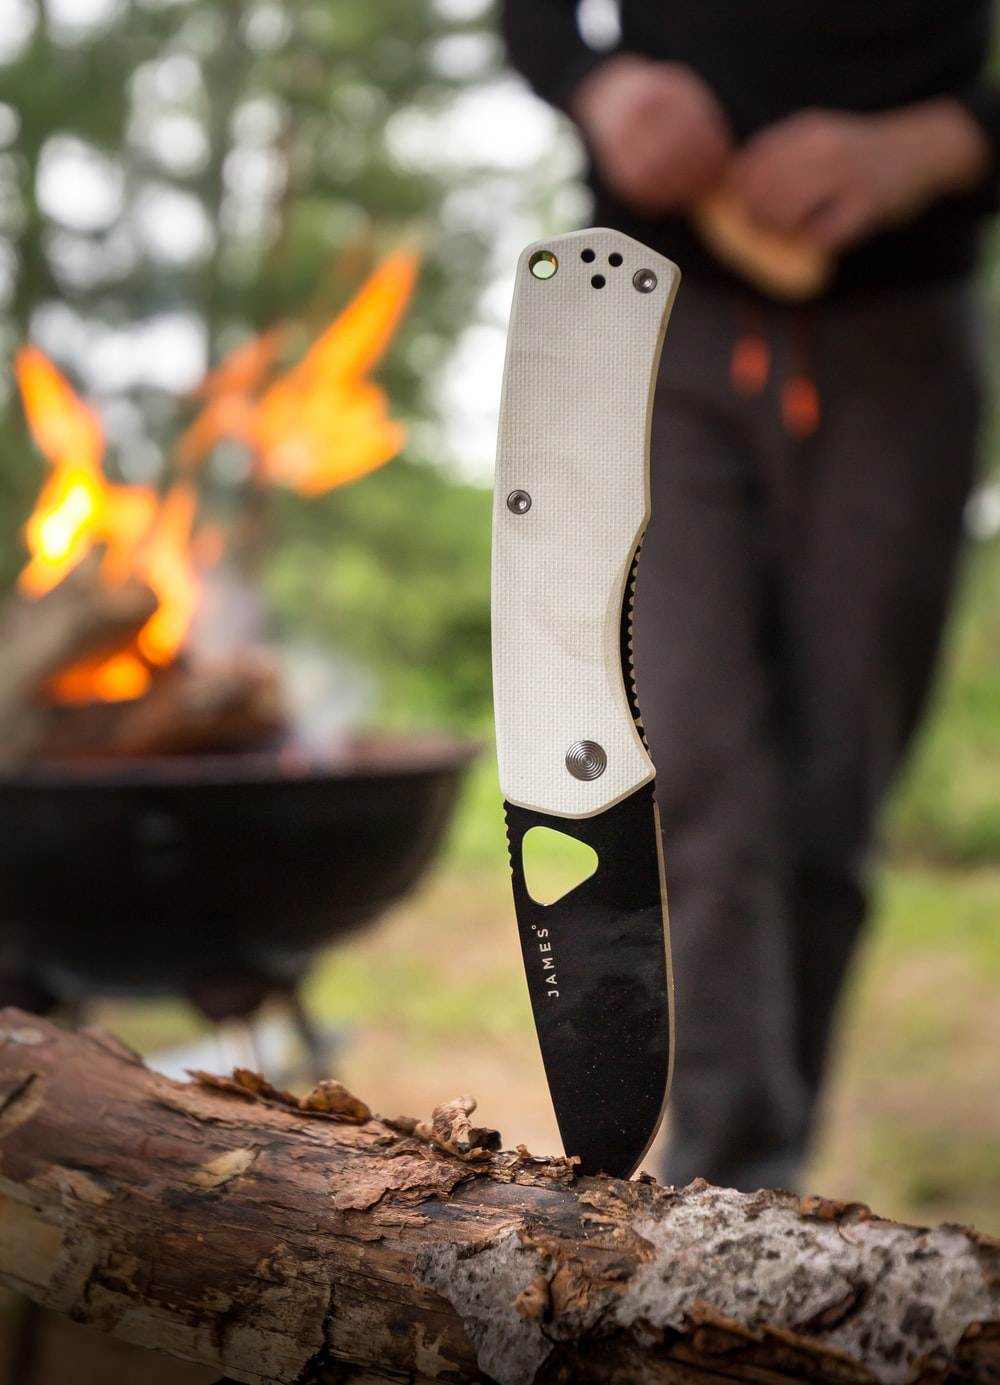 white and black James pocketknife sticking on branch